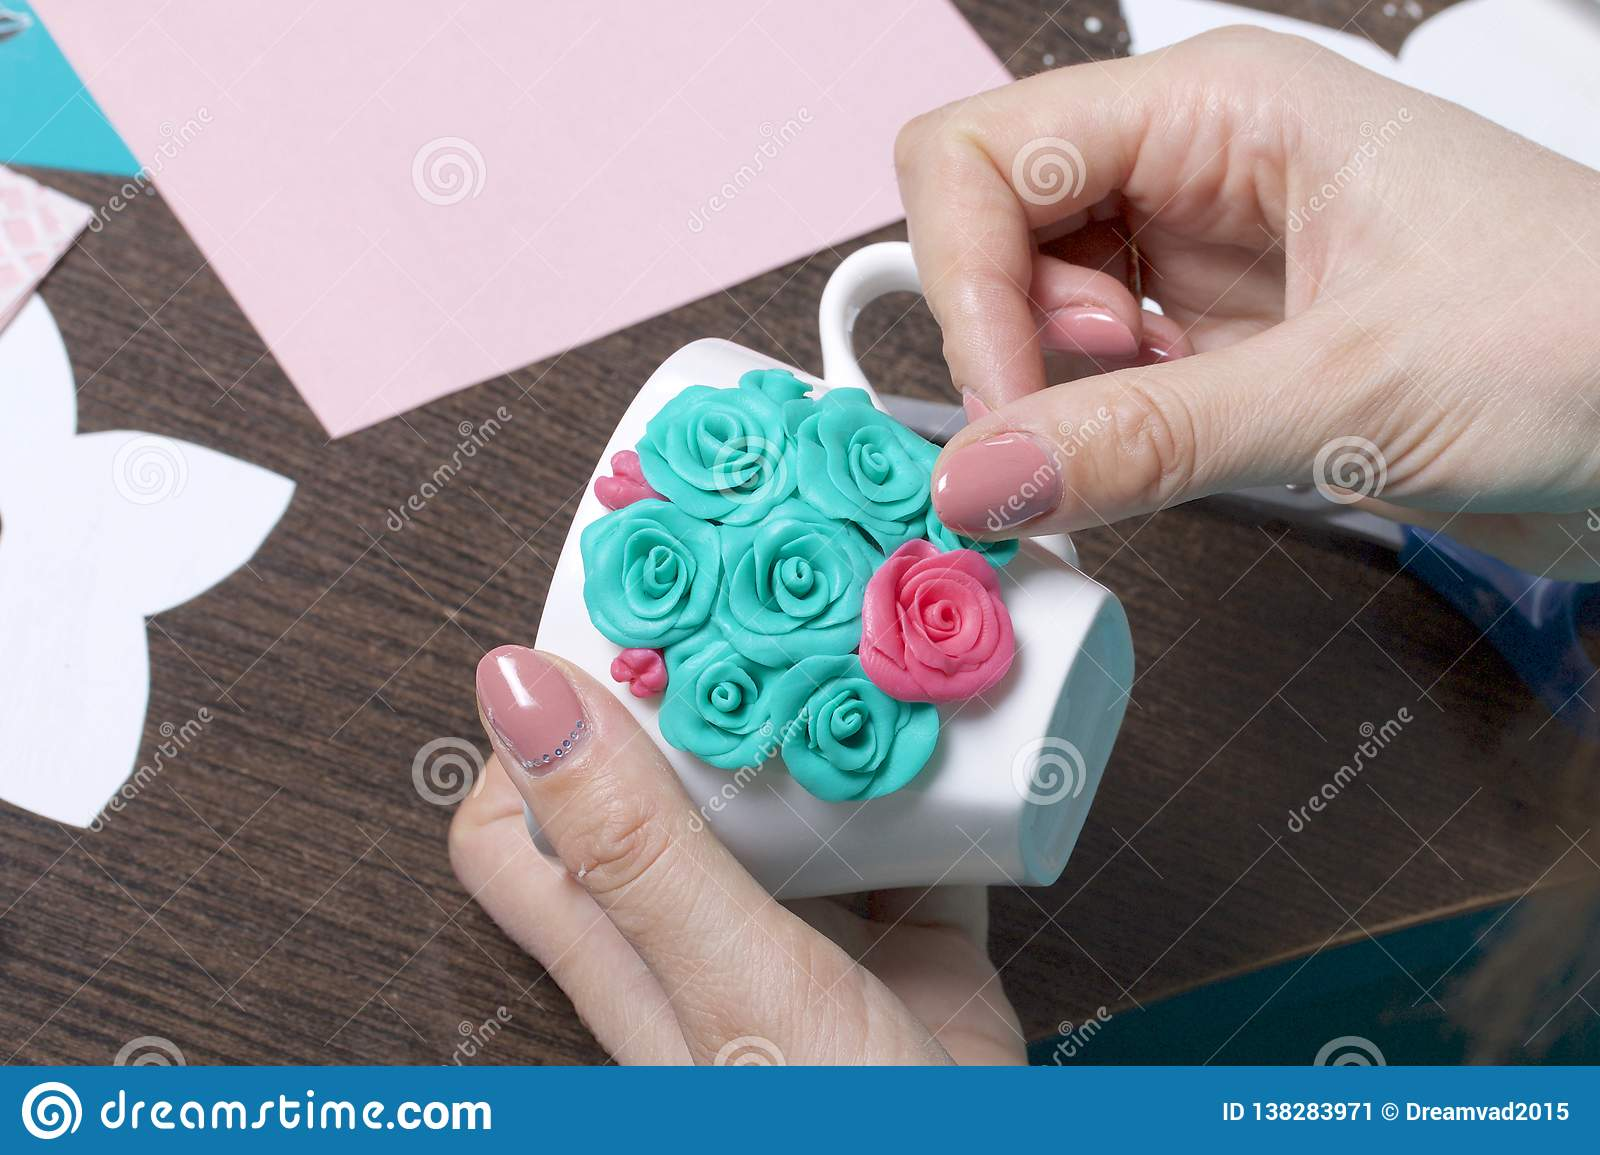 Crafts From Polymer Clay Stock Image Image Of Elements 138283971